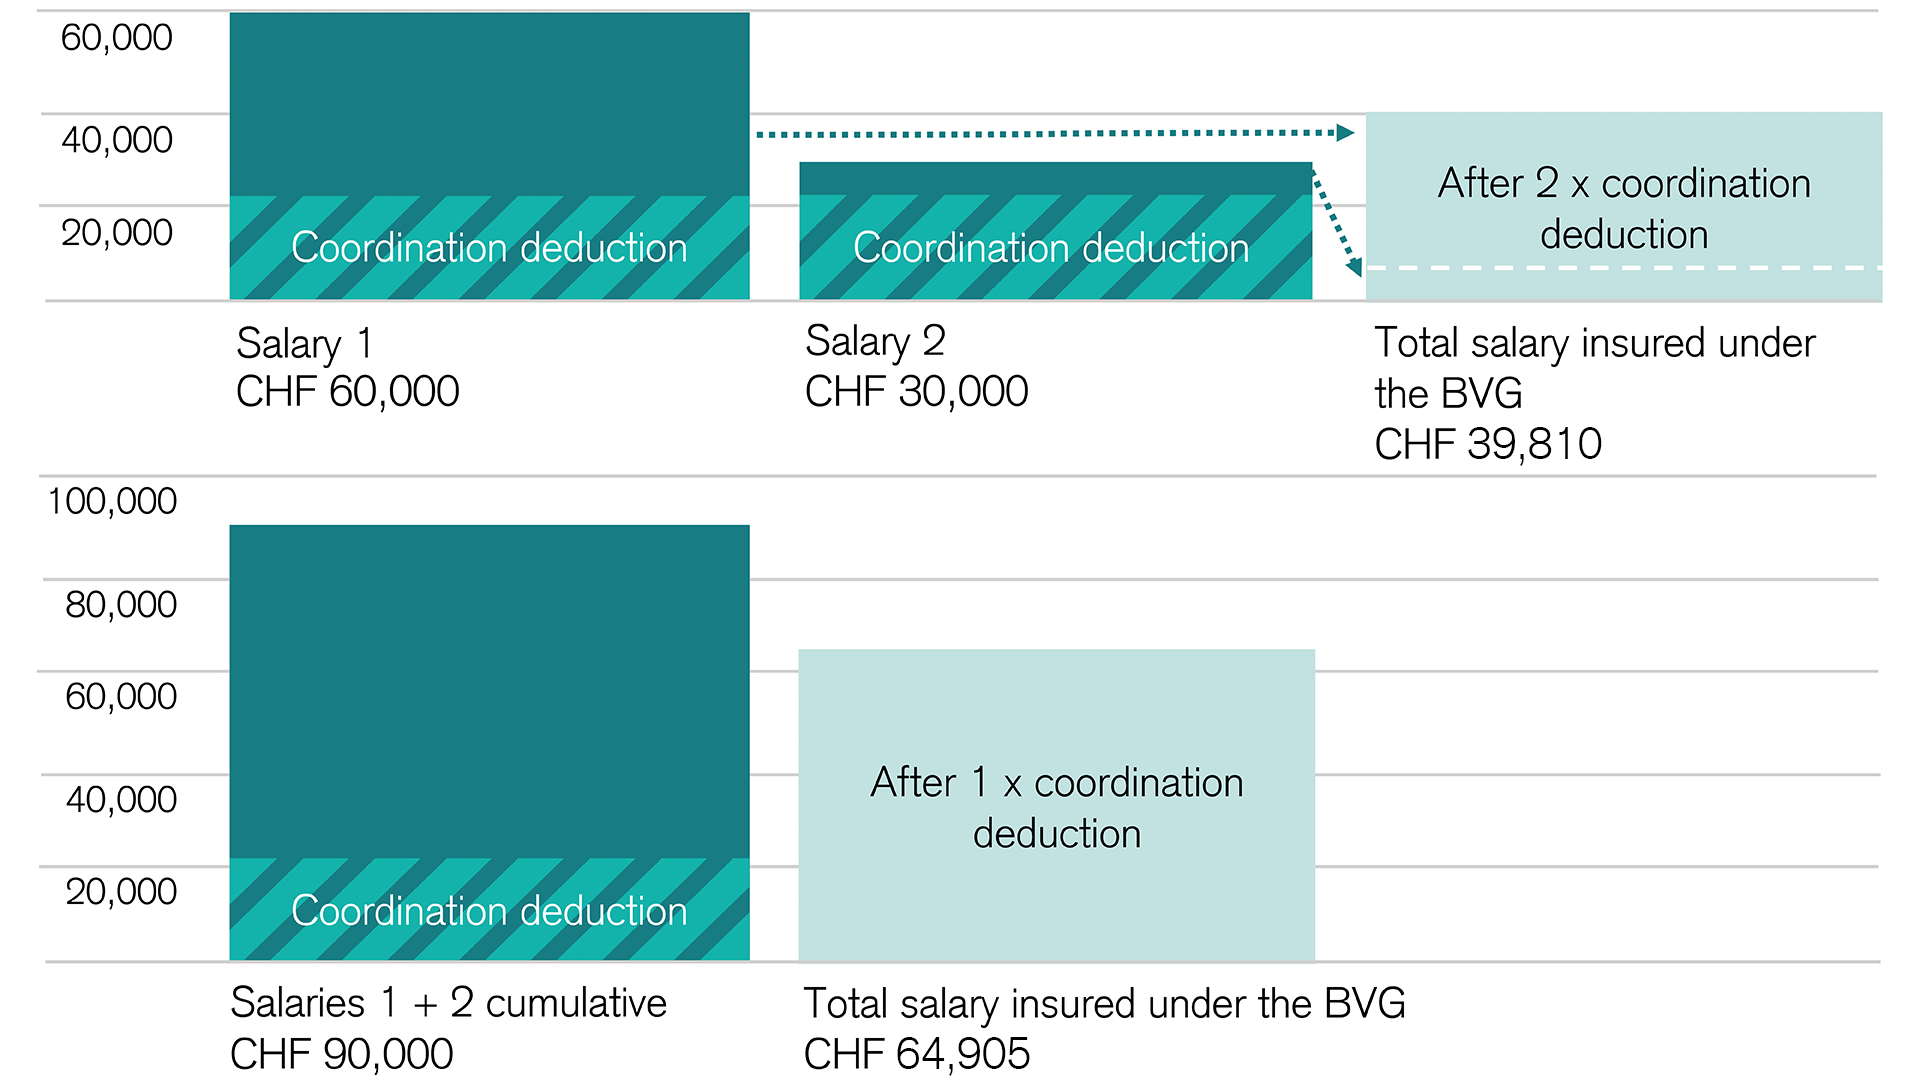 Sample calculation: Two salaries, both above the BVG minimum income required for enrollment